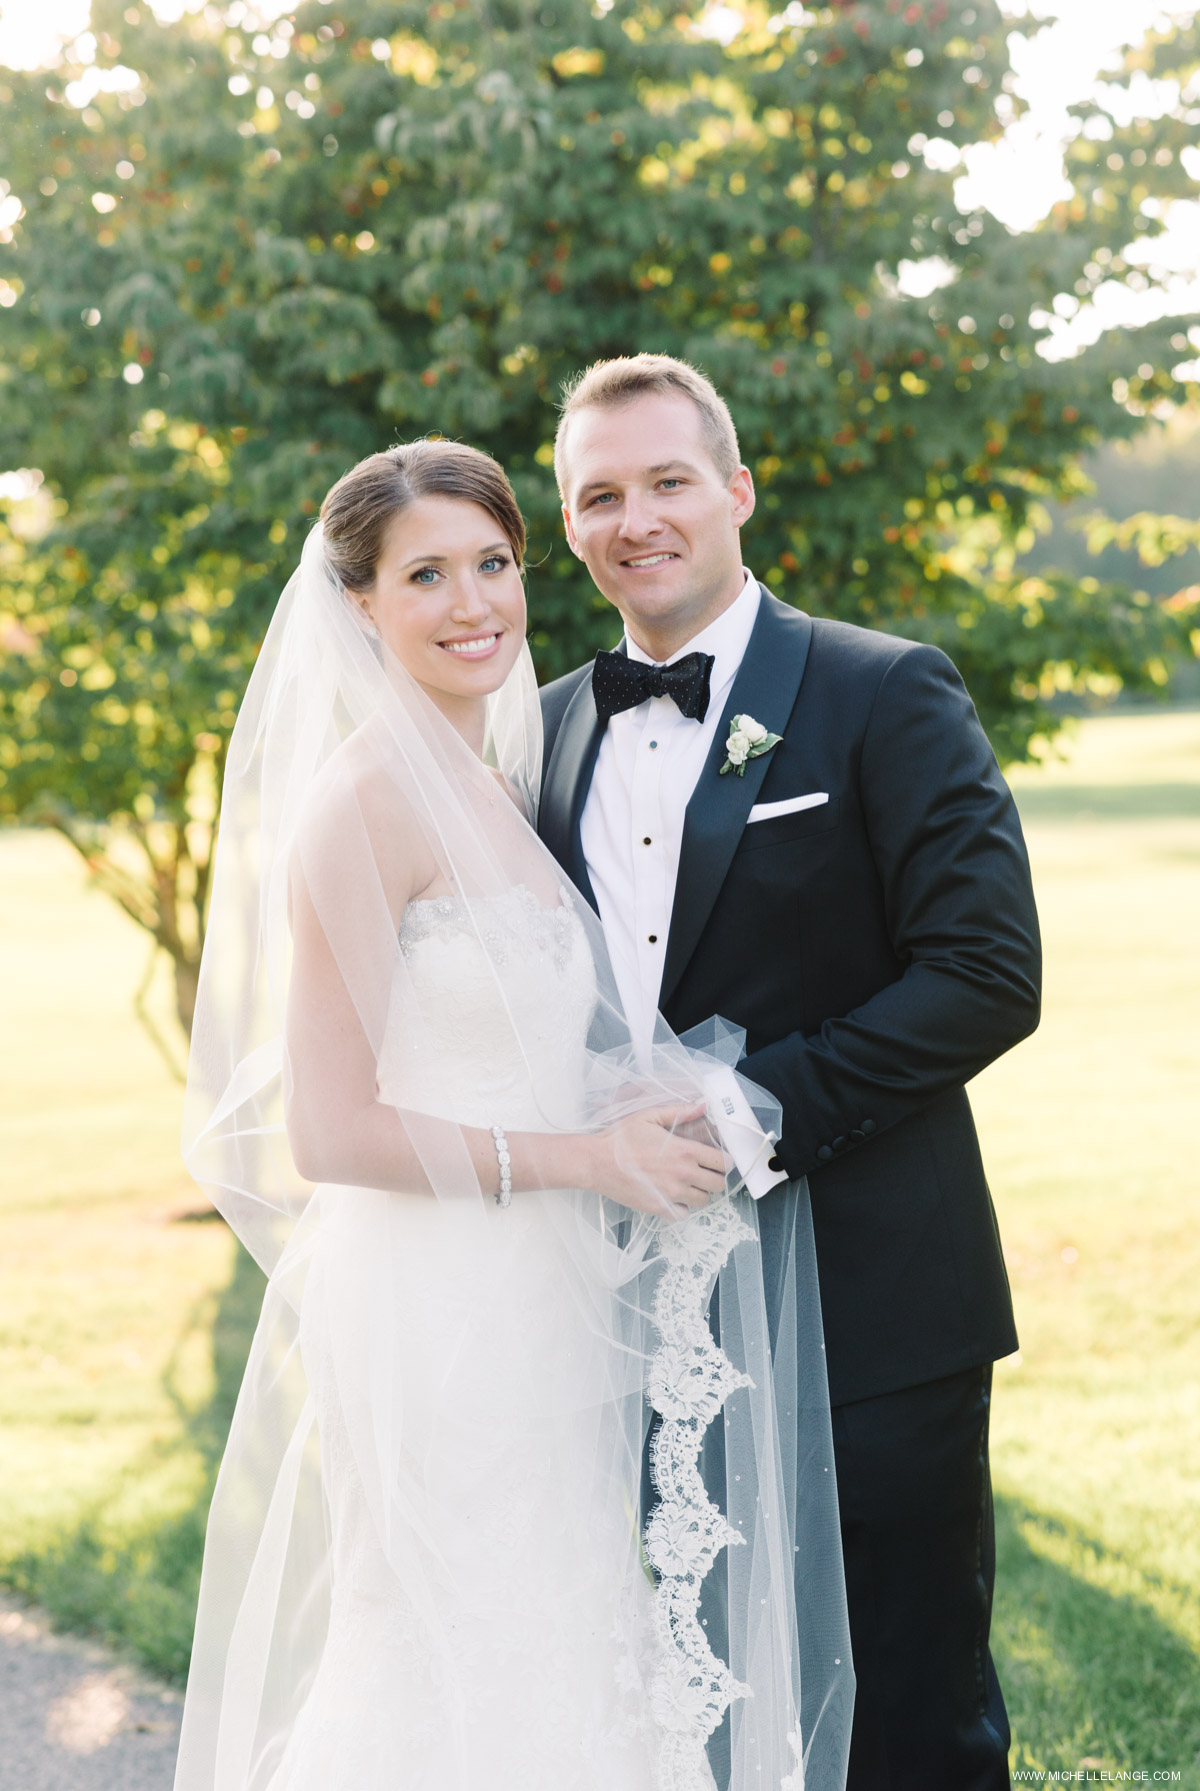 Bride with Lace Veil Riverhouse at Rumson Country Club Wedding